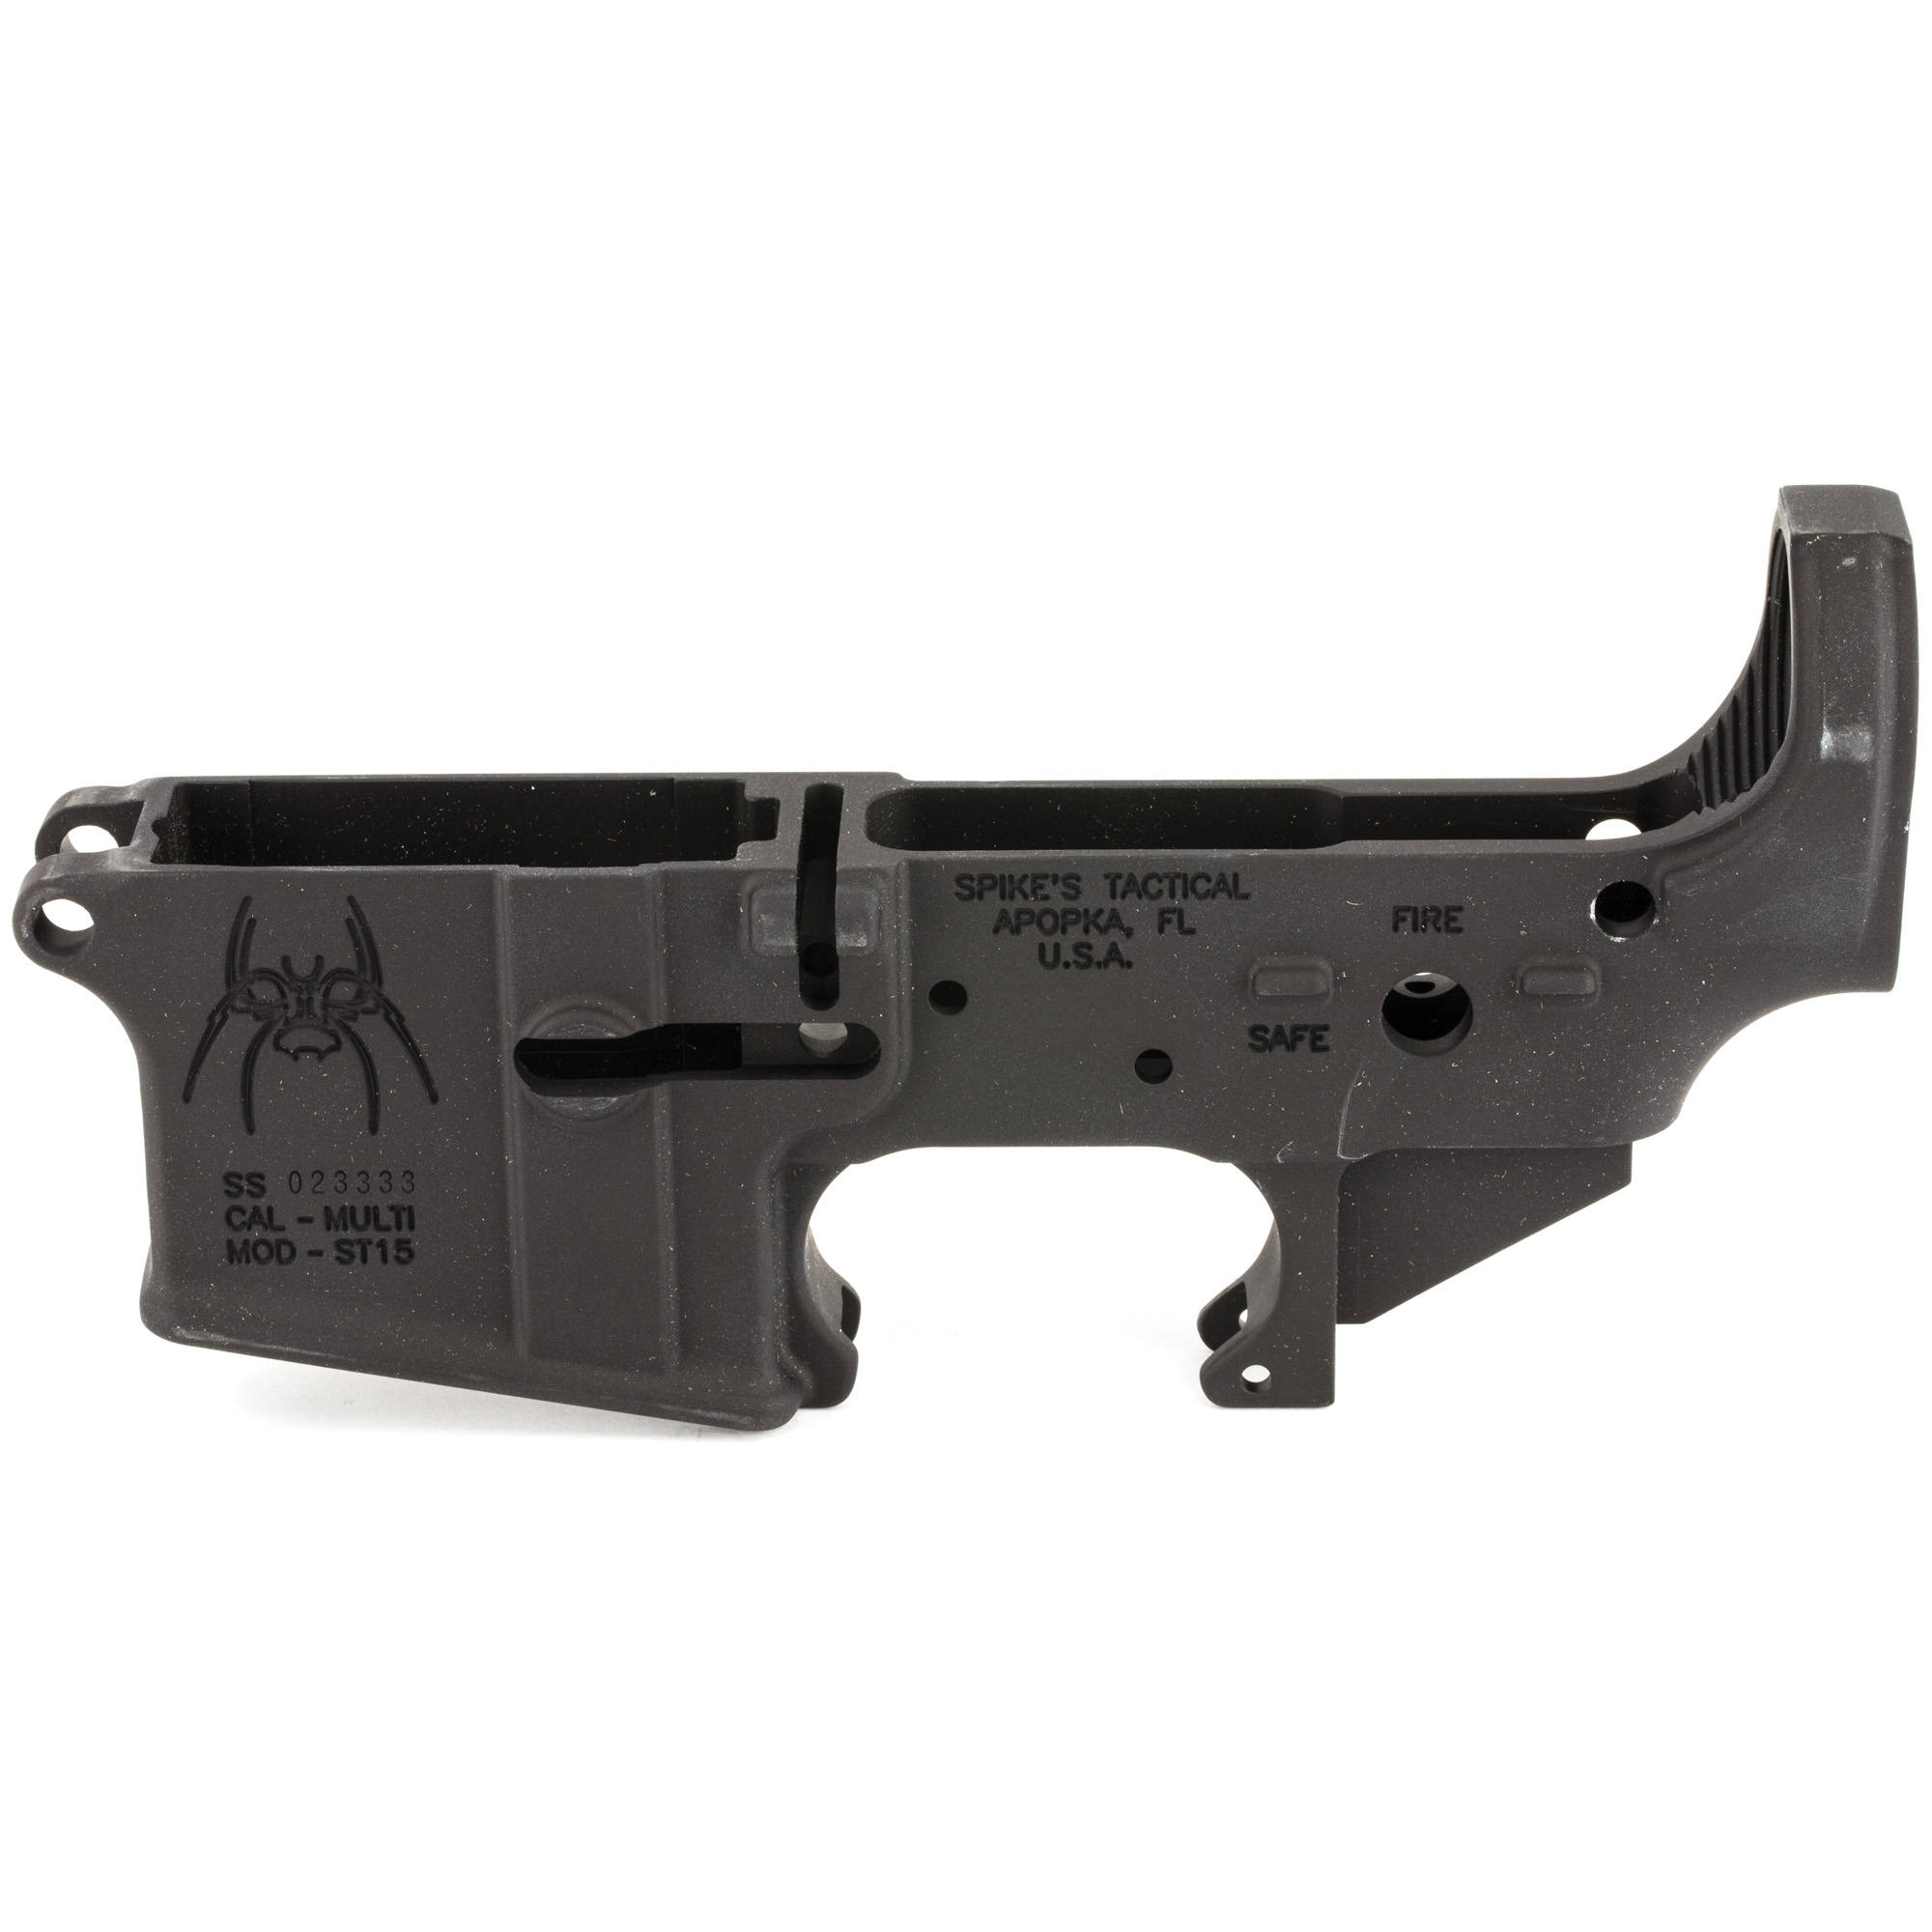 "Spike's lowers are made to the highest standards. If you are planning a build or just putting lowers away for a rainy day"" you can't go wrong with Spike's lower receivers."